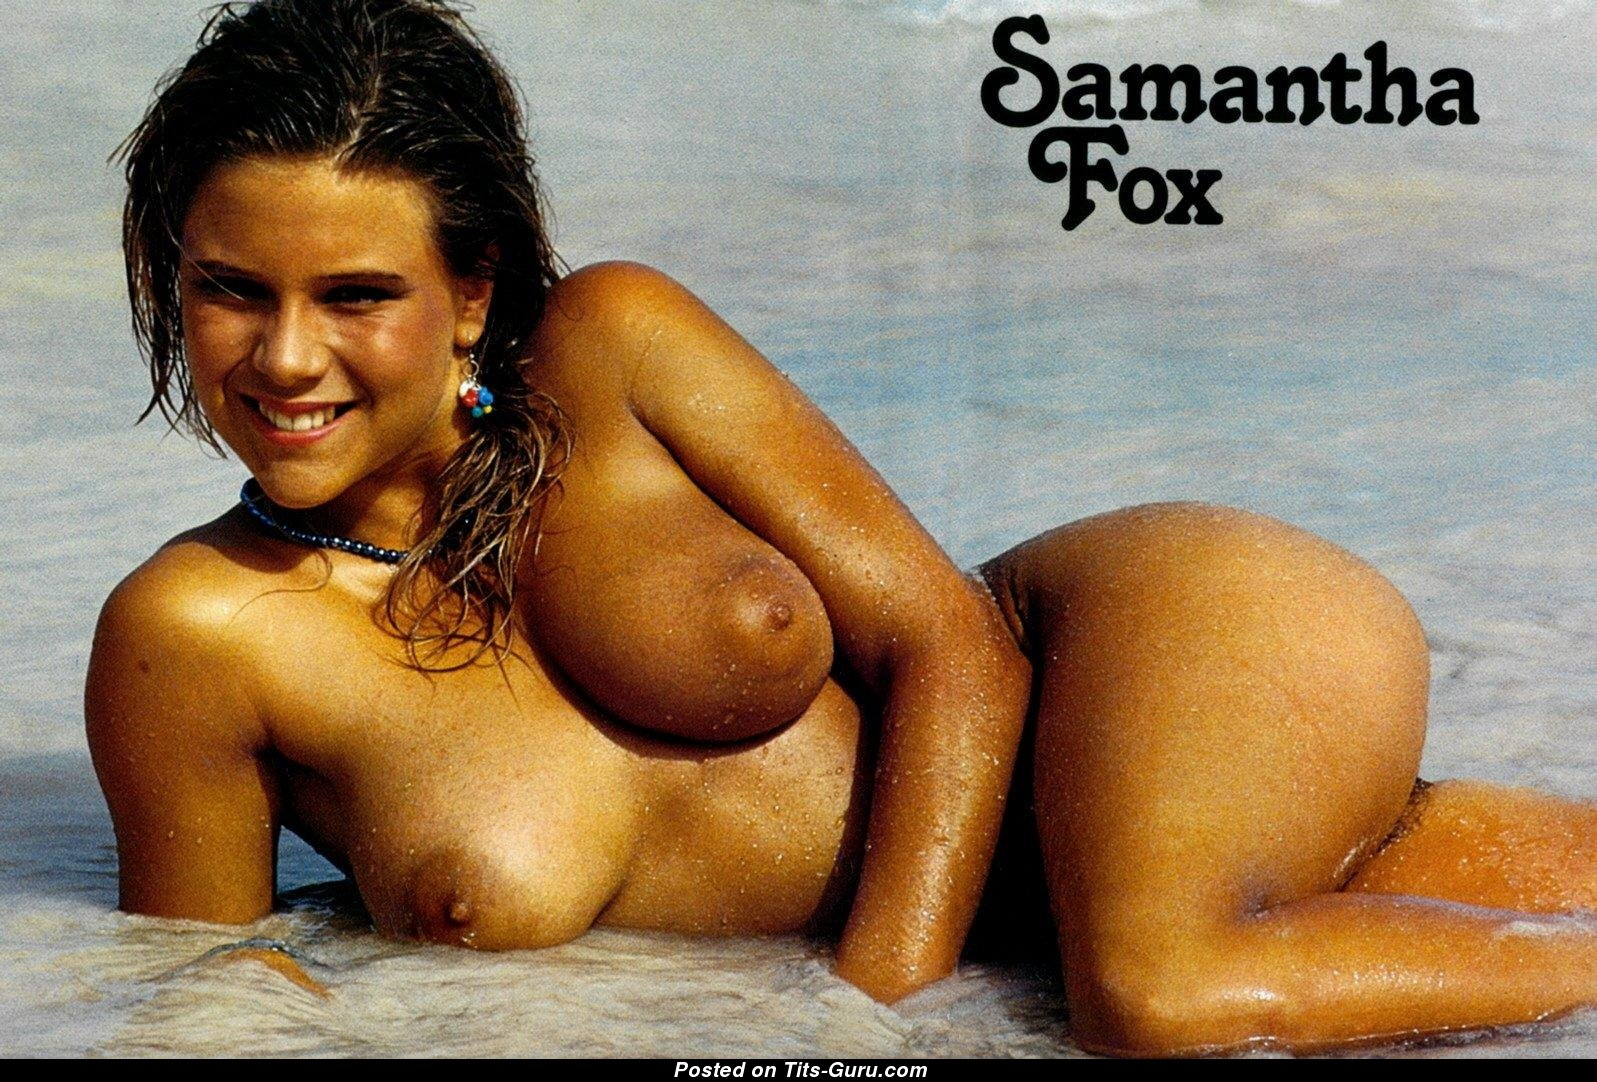 Samantha Fox - Blonde Actress With Exposed Natural Dd Size -3228